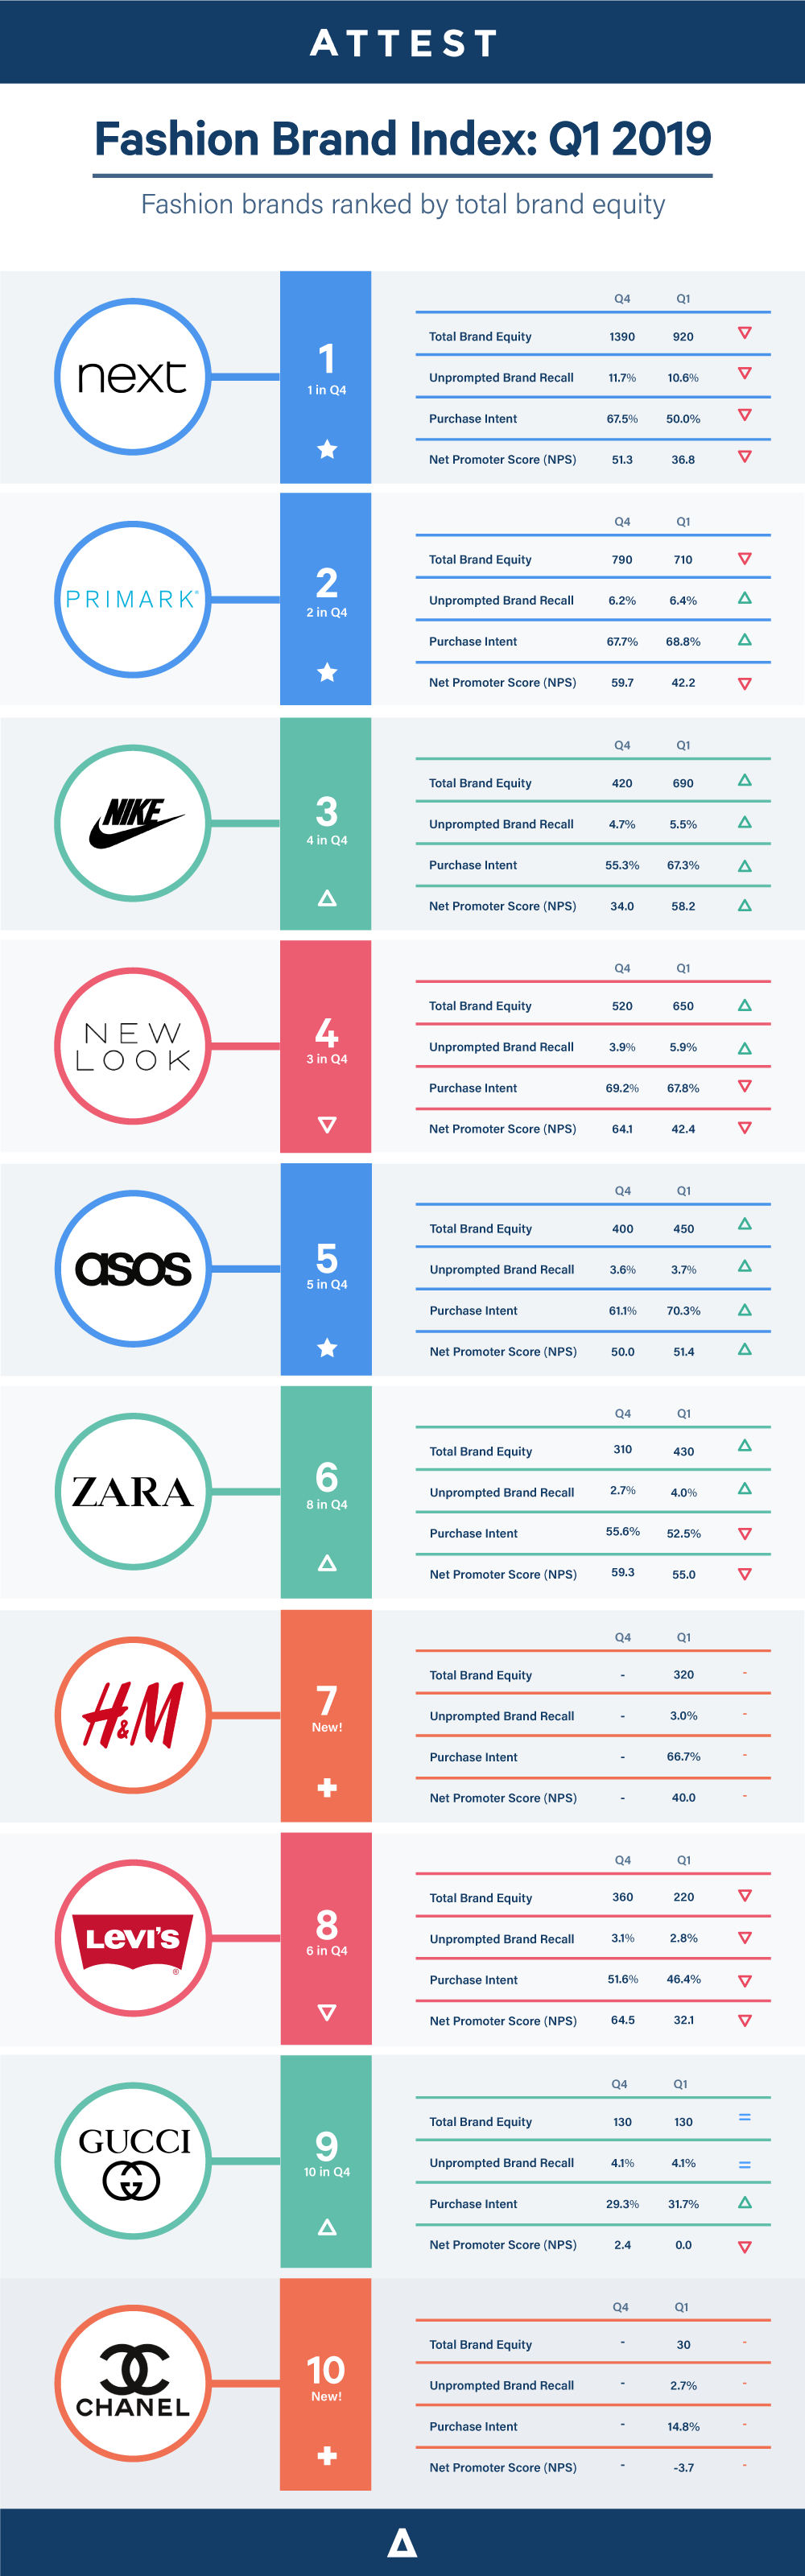 Brand-index-fashion-2019-Q1